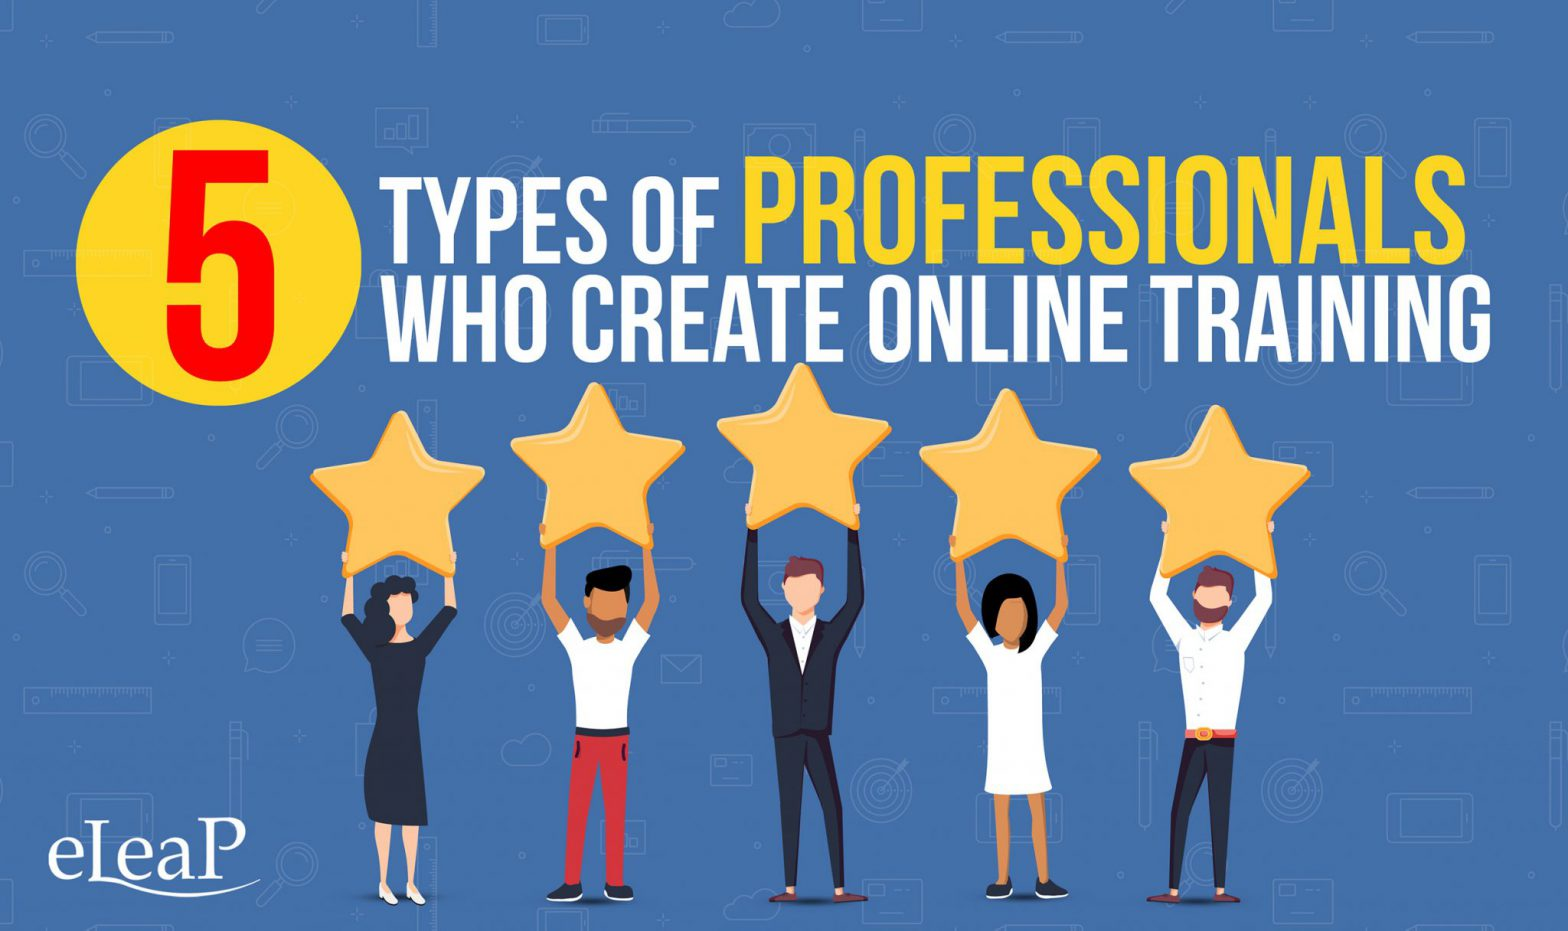 5 Types of Professionals Who Create Online Training